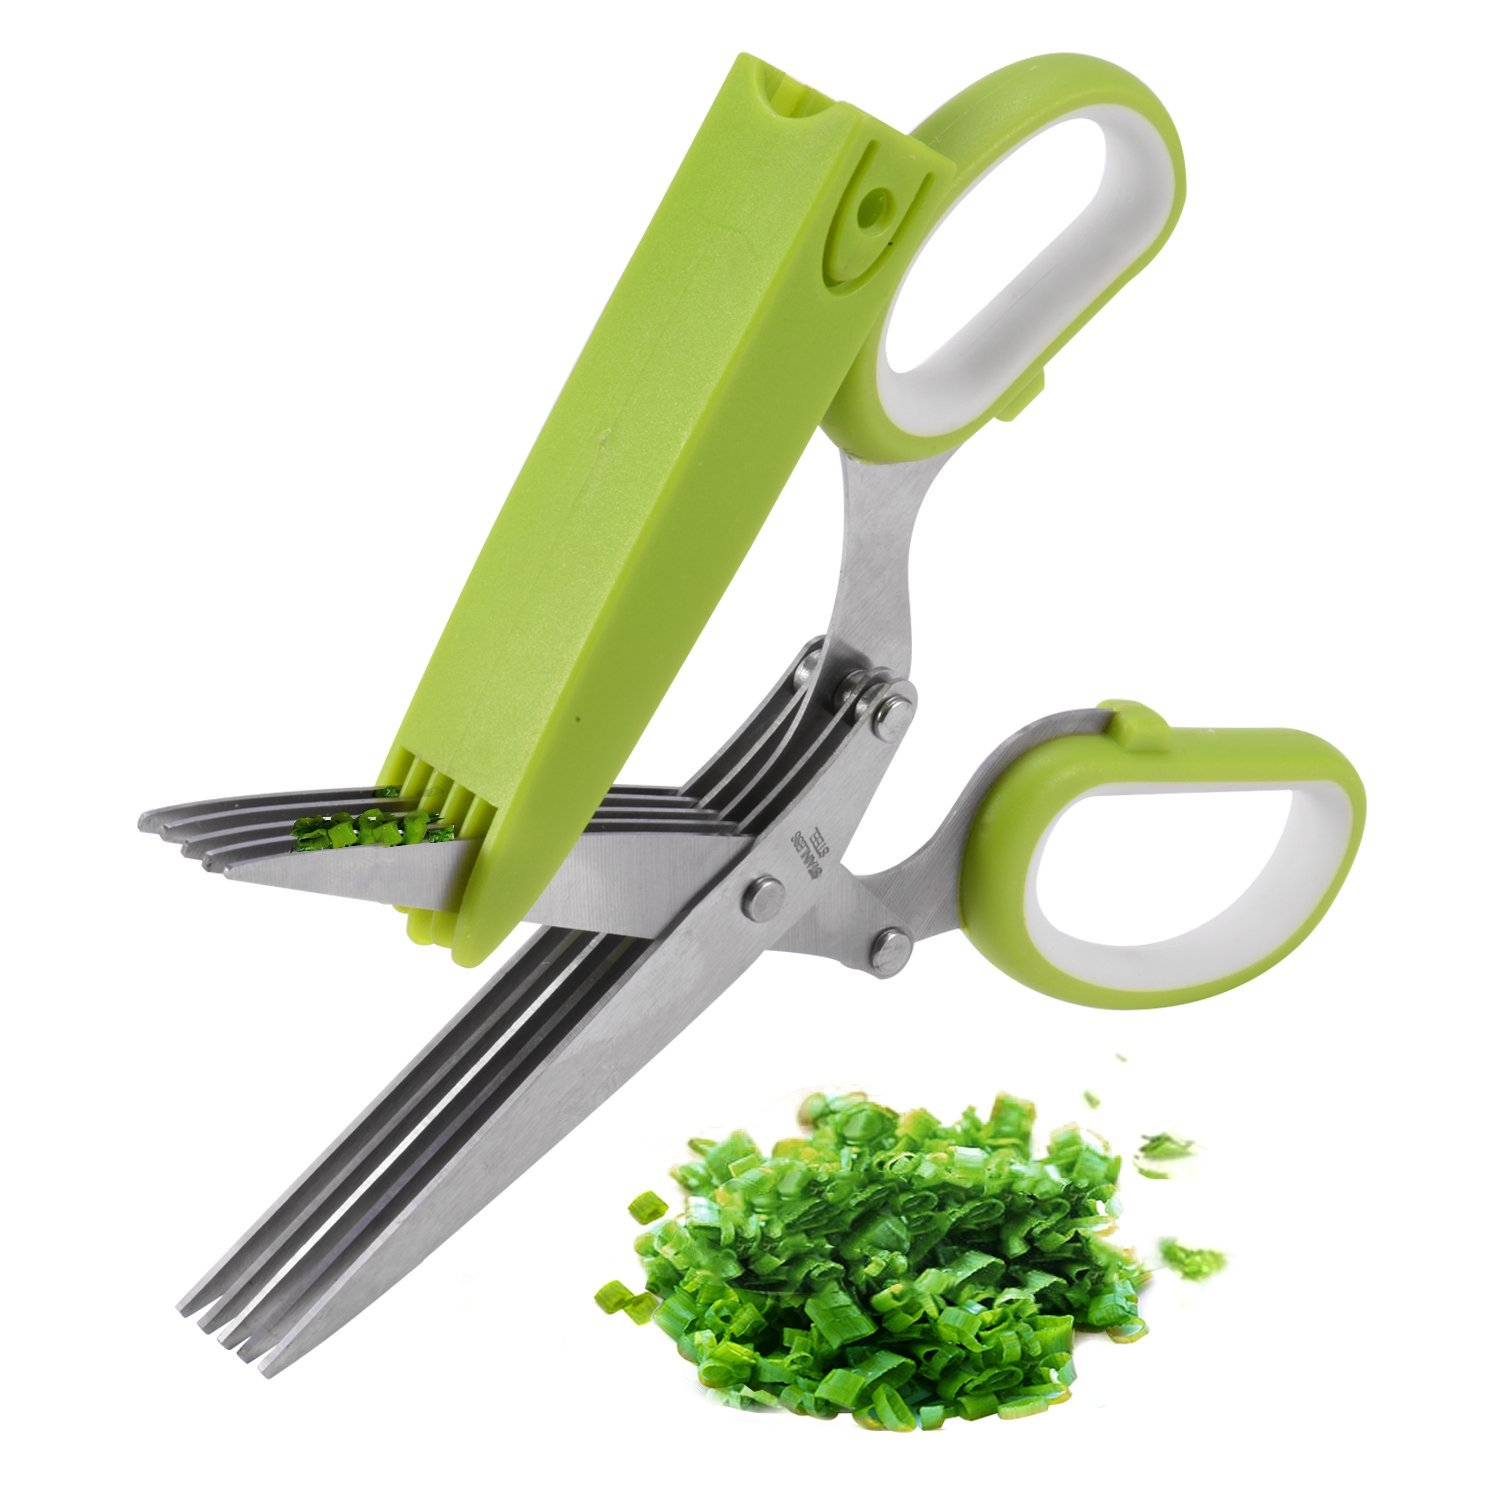 Betterhome Multipurpose Herb Shears Herb Scissors with 5 Stainless Steel Blades and Cover by X-Chef